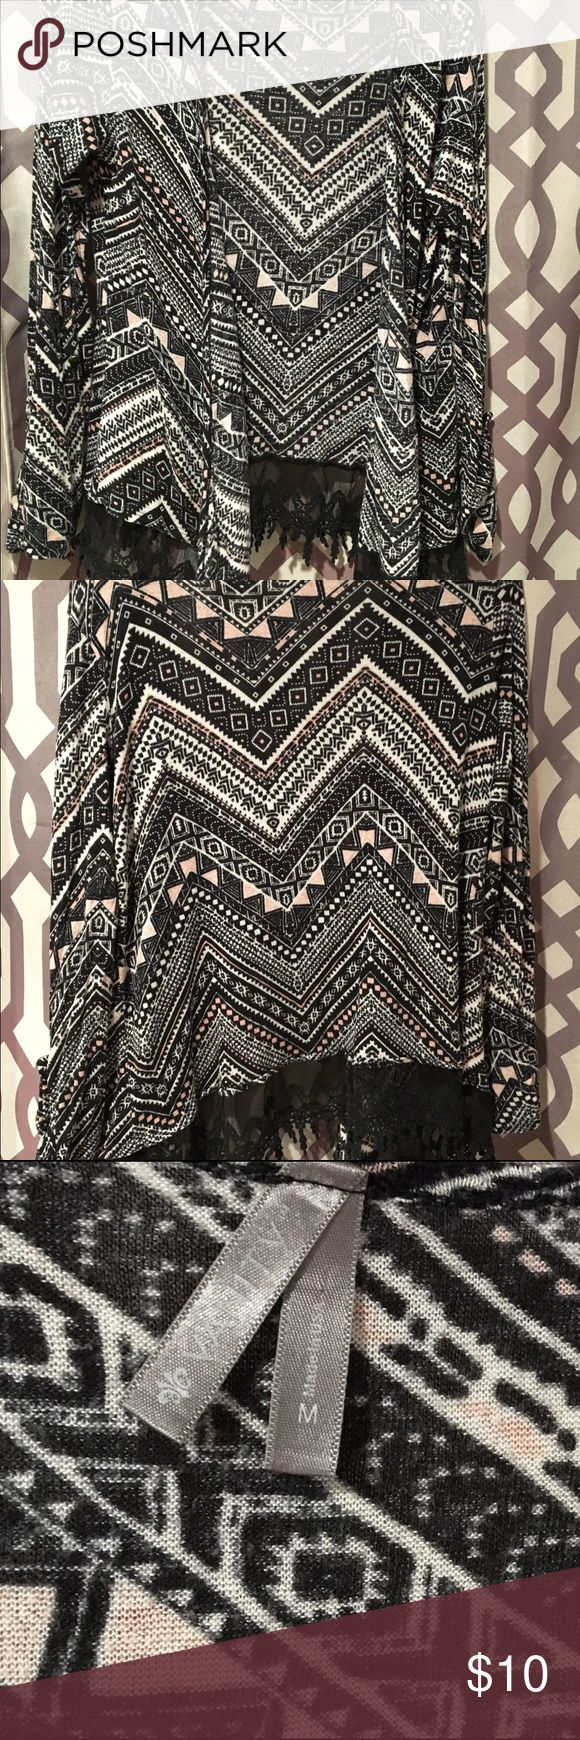 Black, pink and white tribal cardigan Black, white and pink tribal cardigan lined in lace trim. Pre owned and loved ❤️ Vanity Sweaters Cardigans